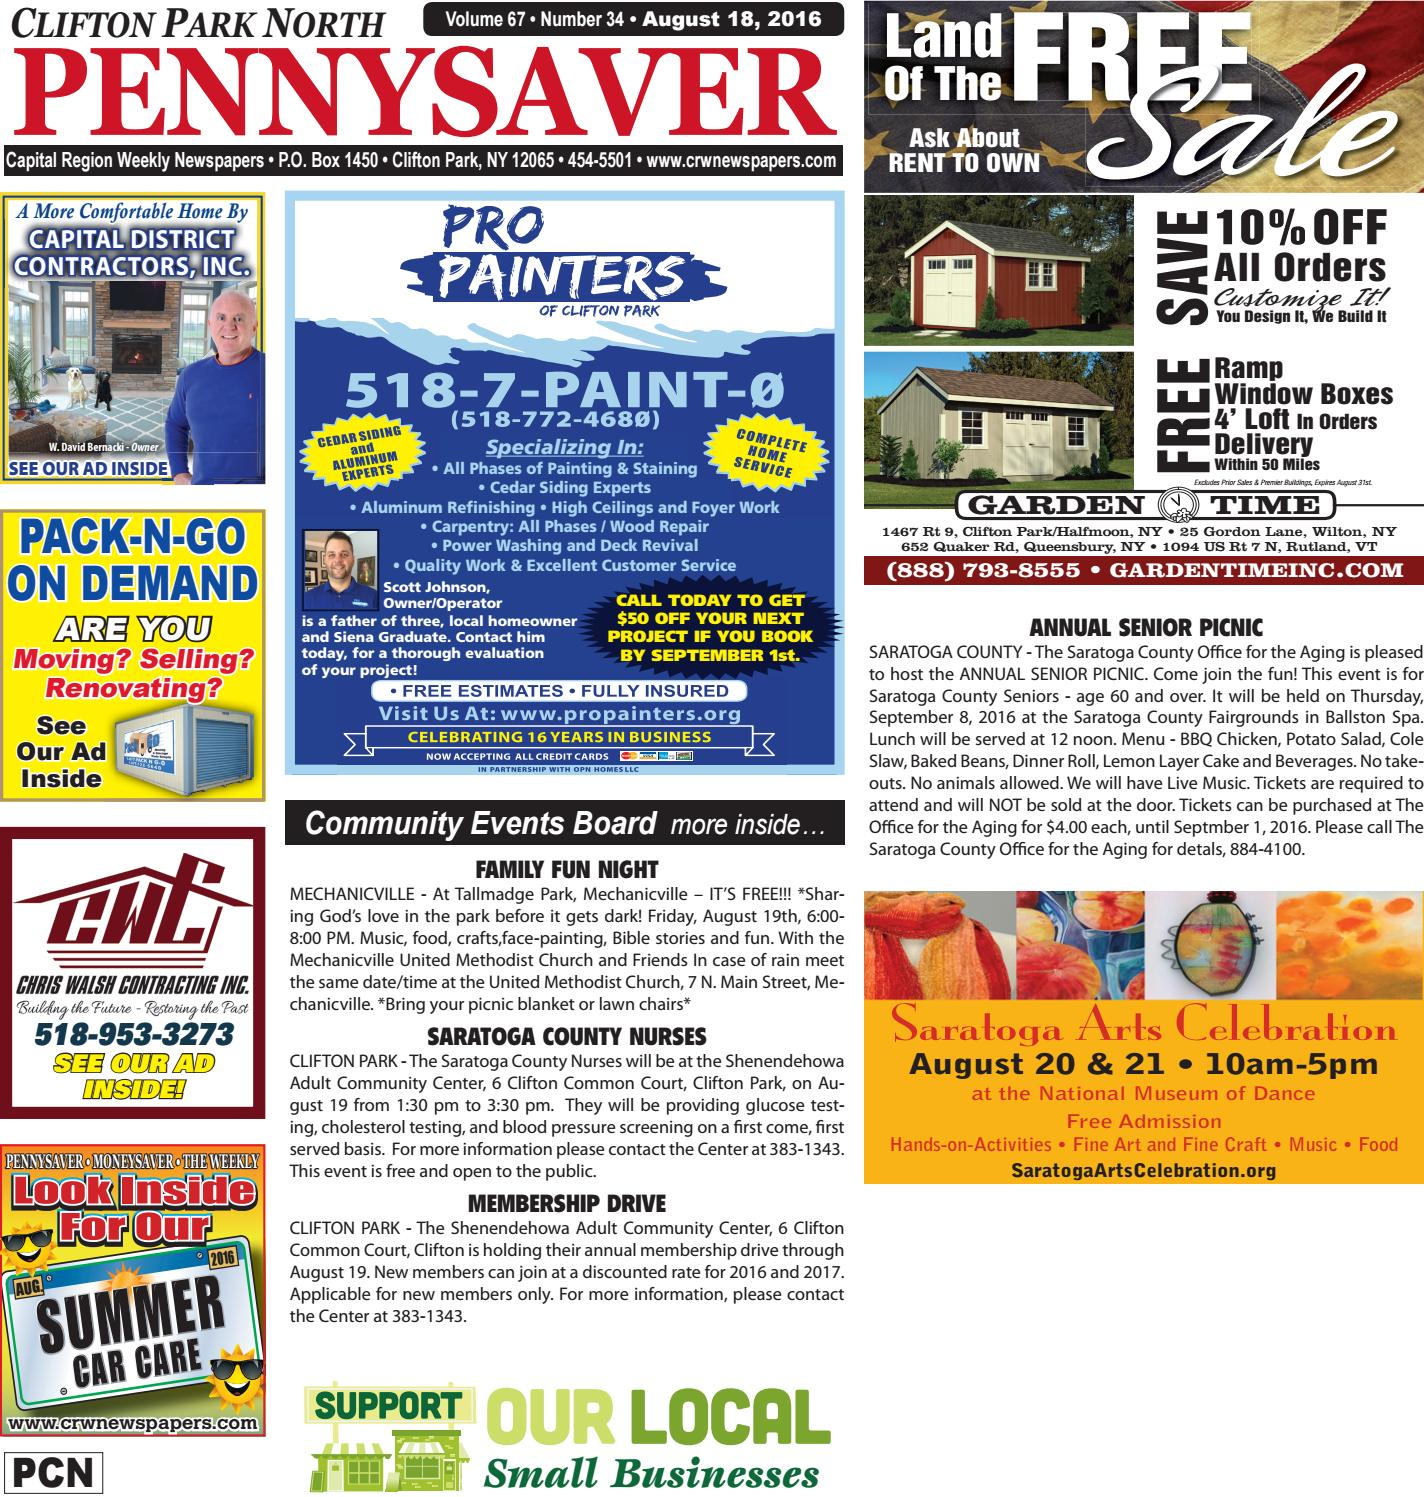 Clifton Park North Pennysaver 081816 By Capital Region Weekly Newspapers Issuu